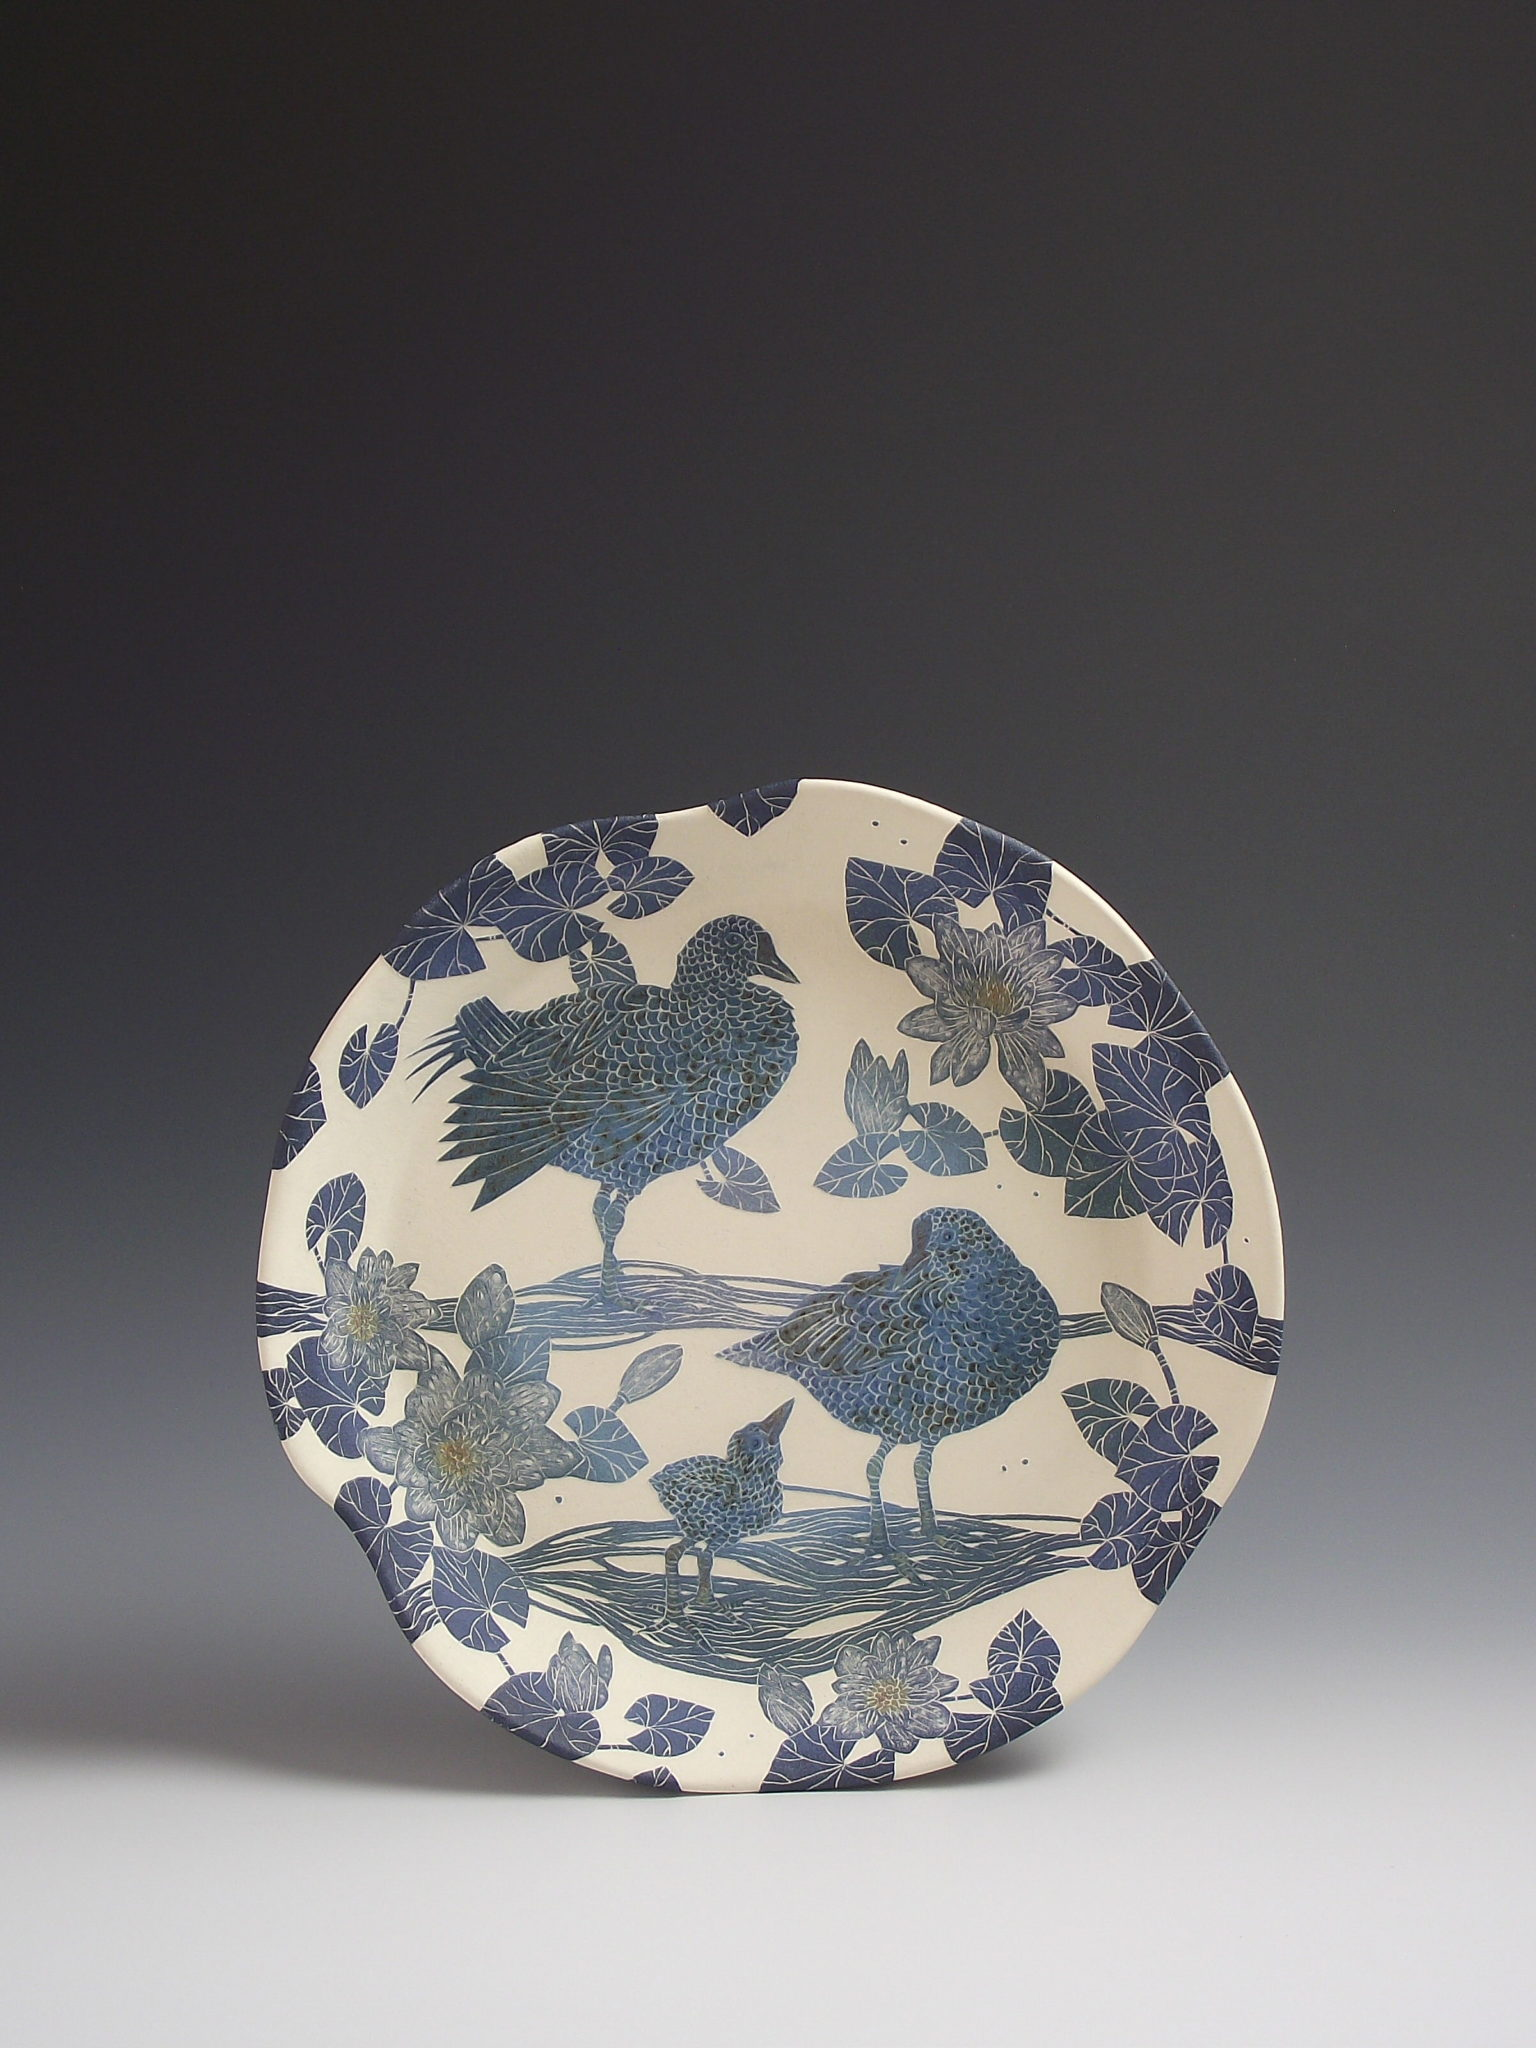 moorhen & water-lily dish front 26cm